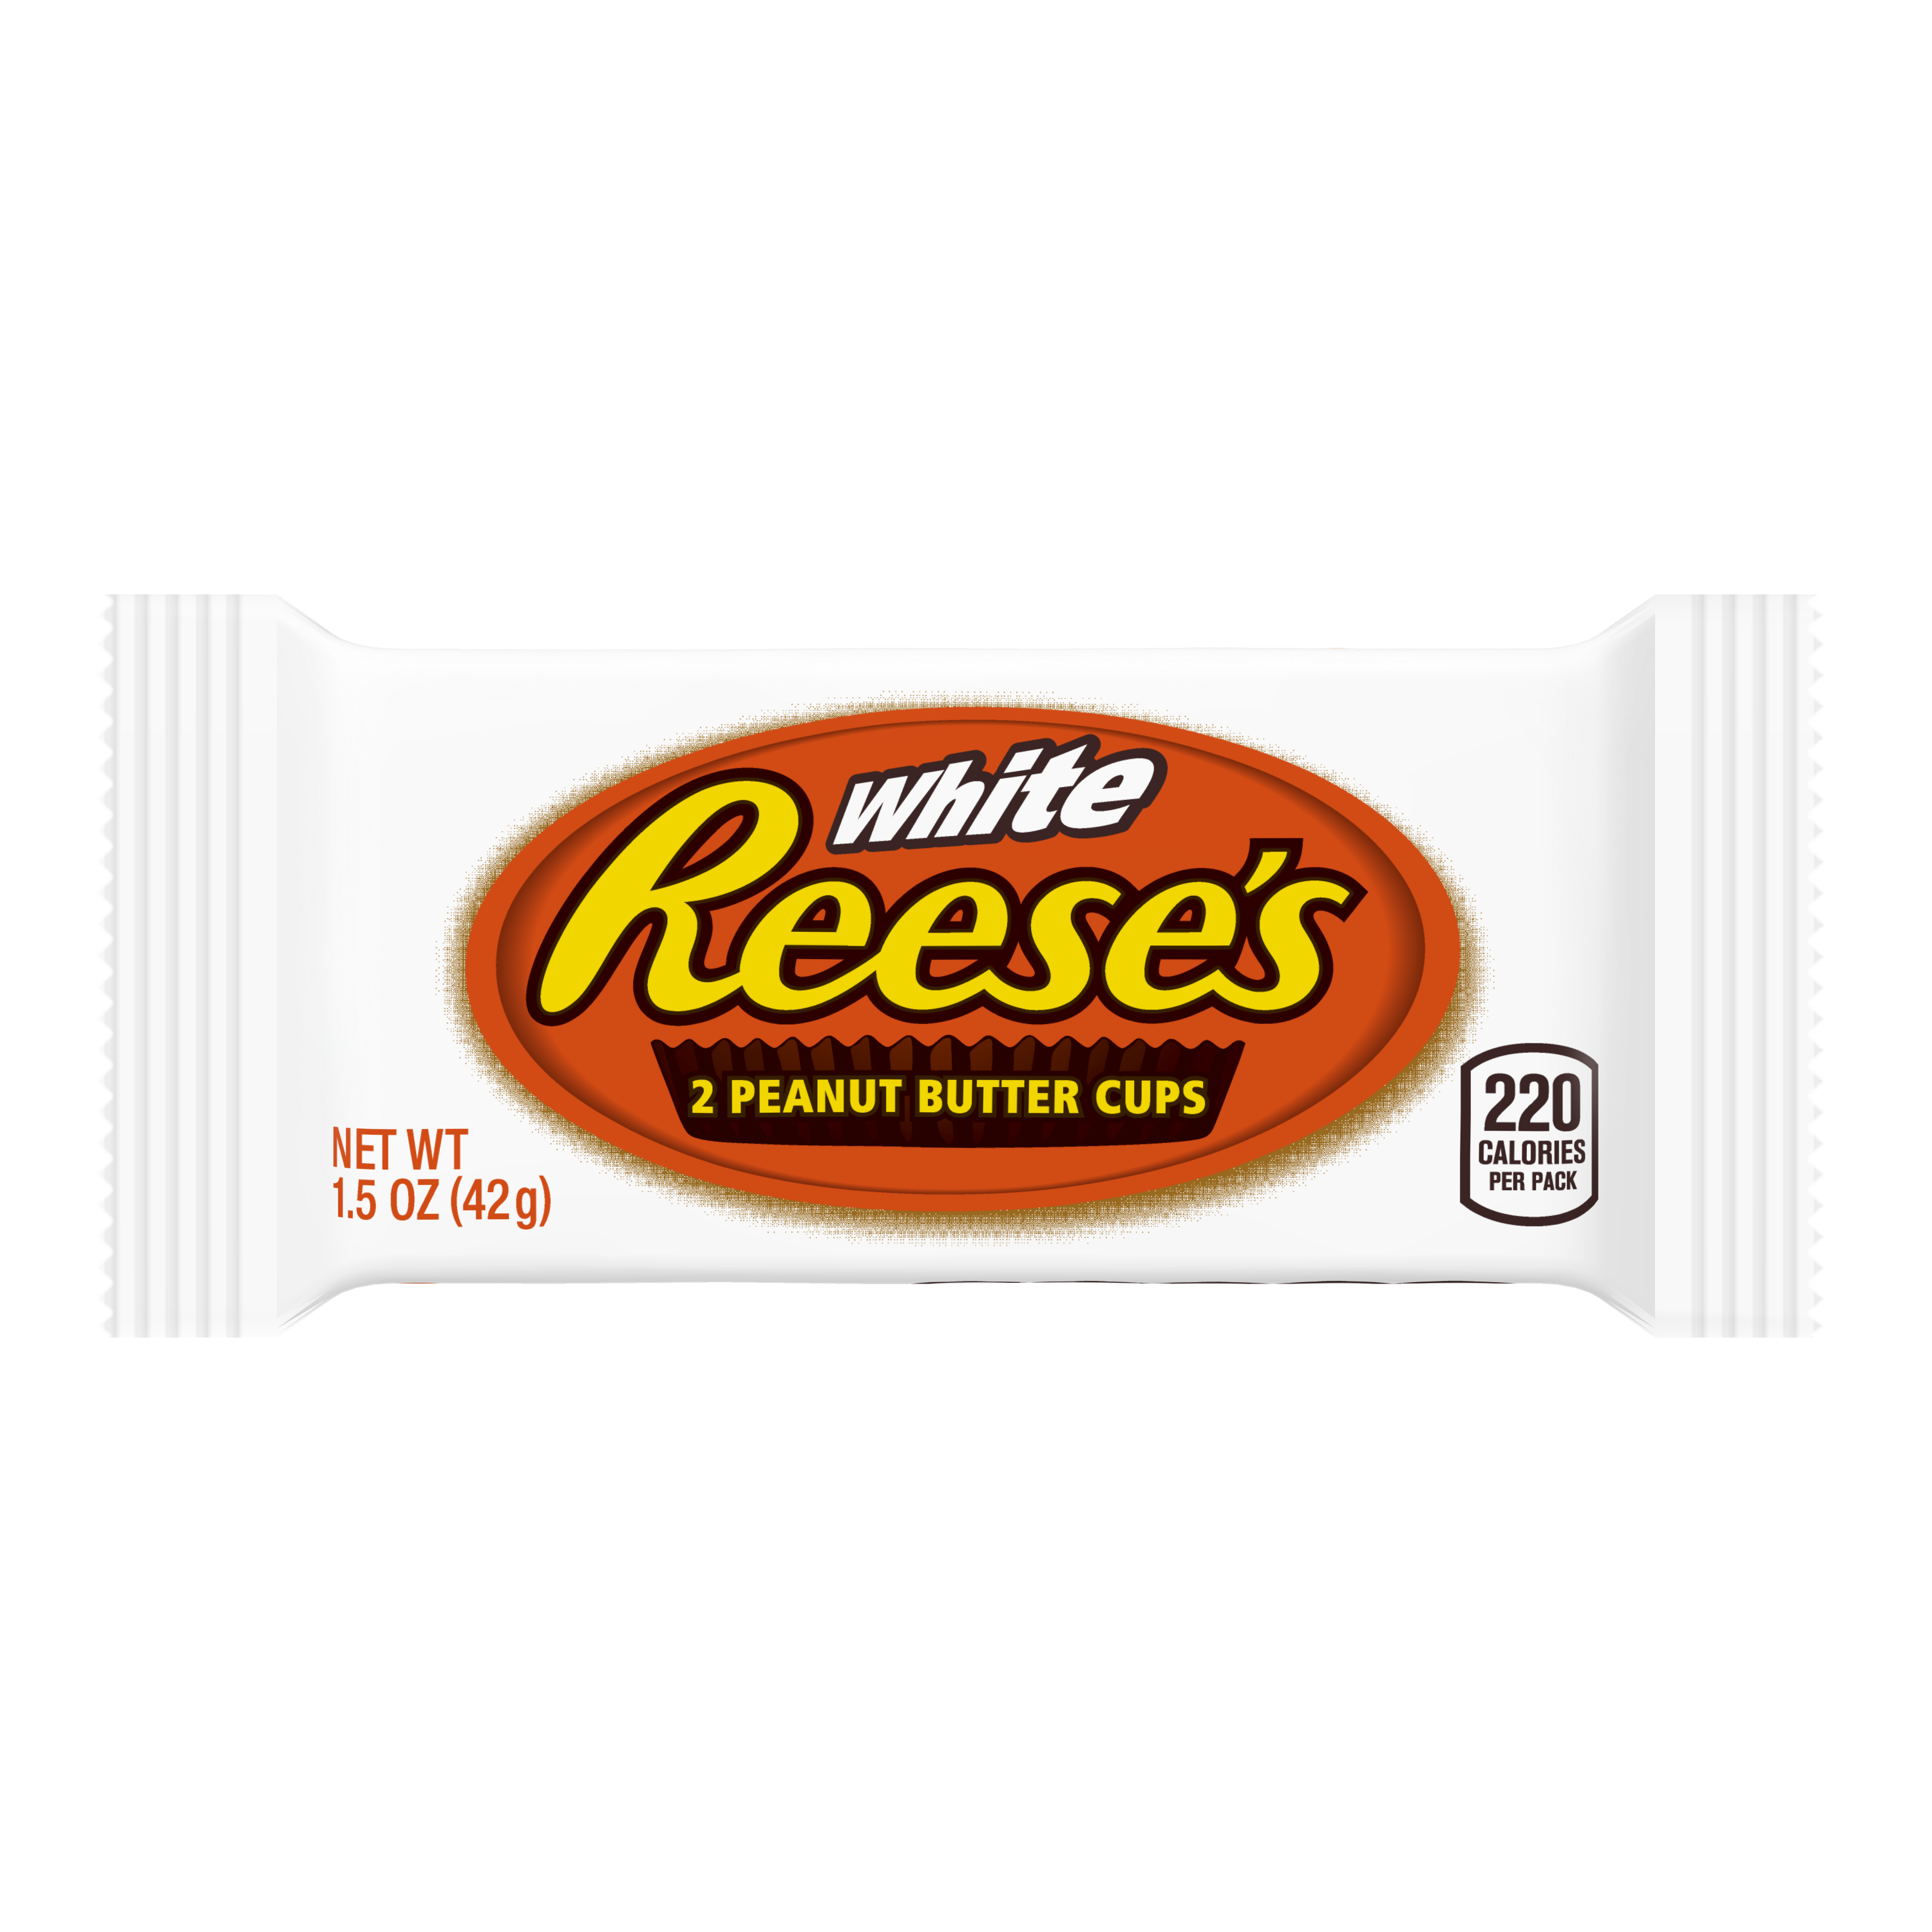 REESE'S White Creme Peanut Butter Cups, 1.5 oz - Front of Package